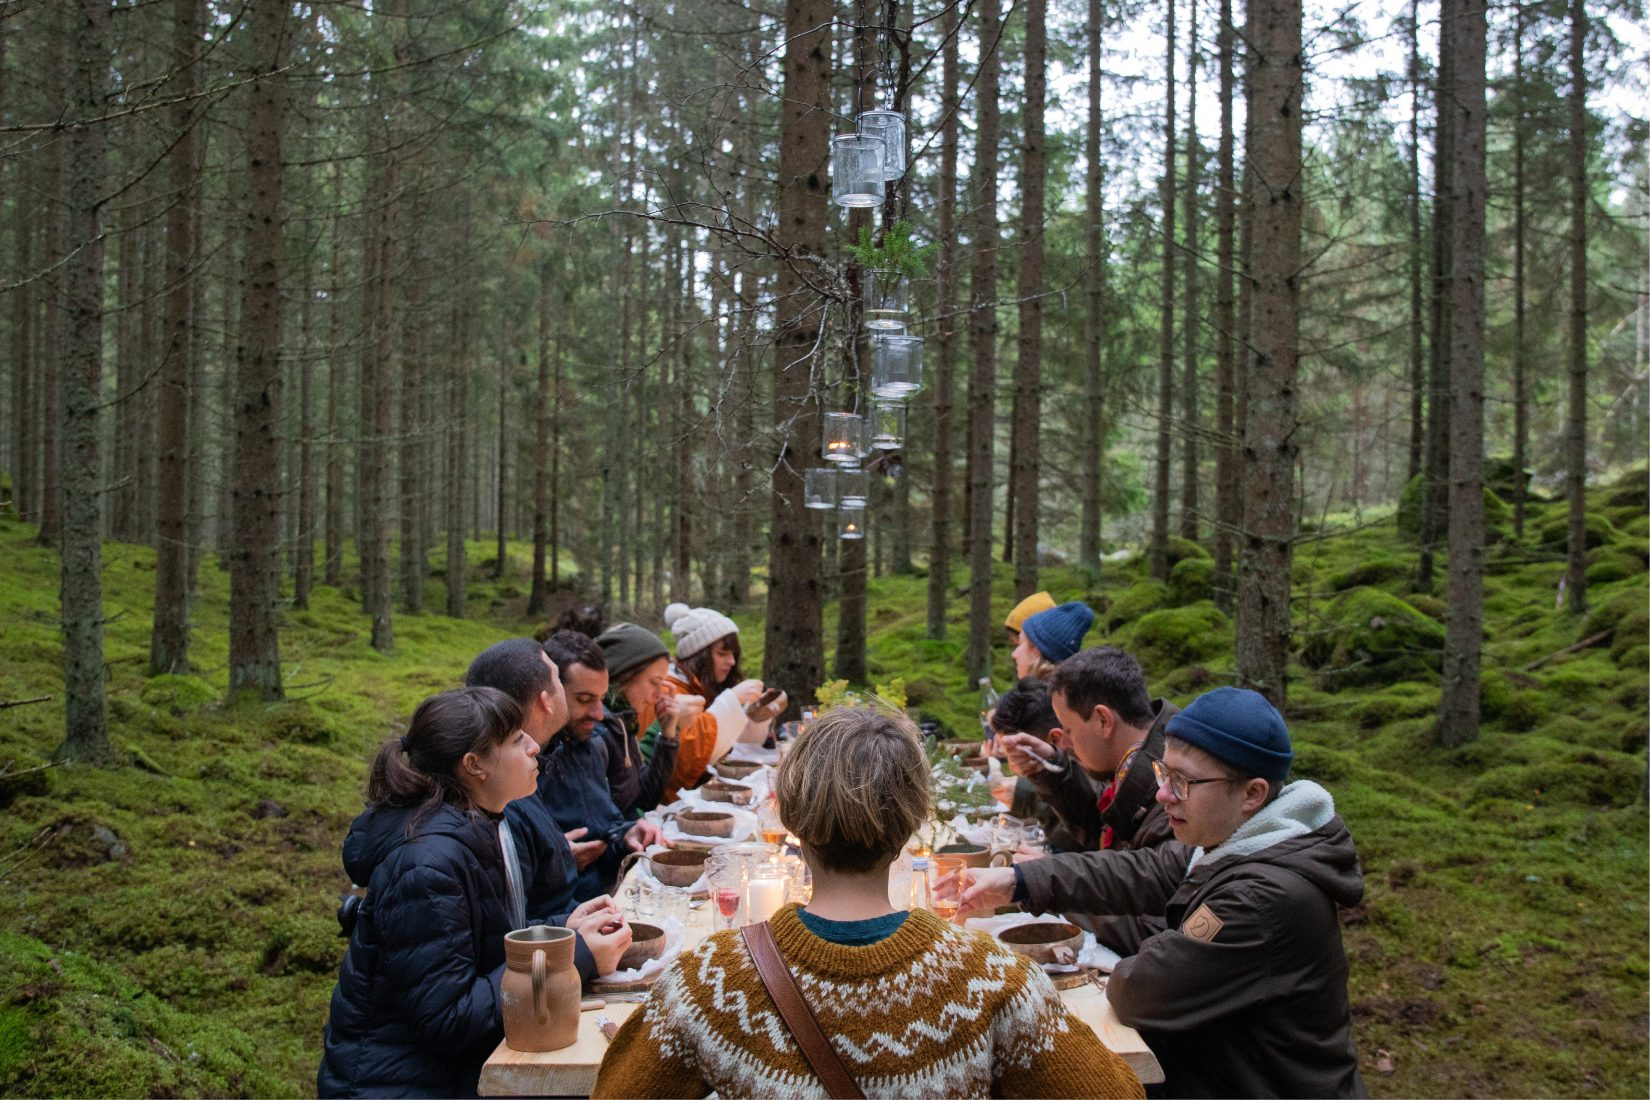 Dinner guest around a table in the middle of the forest